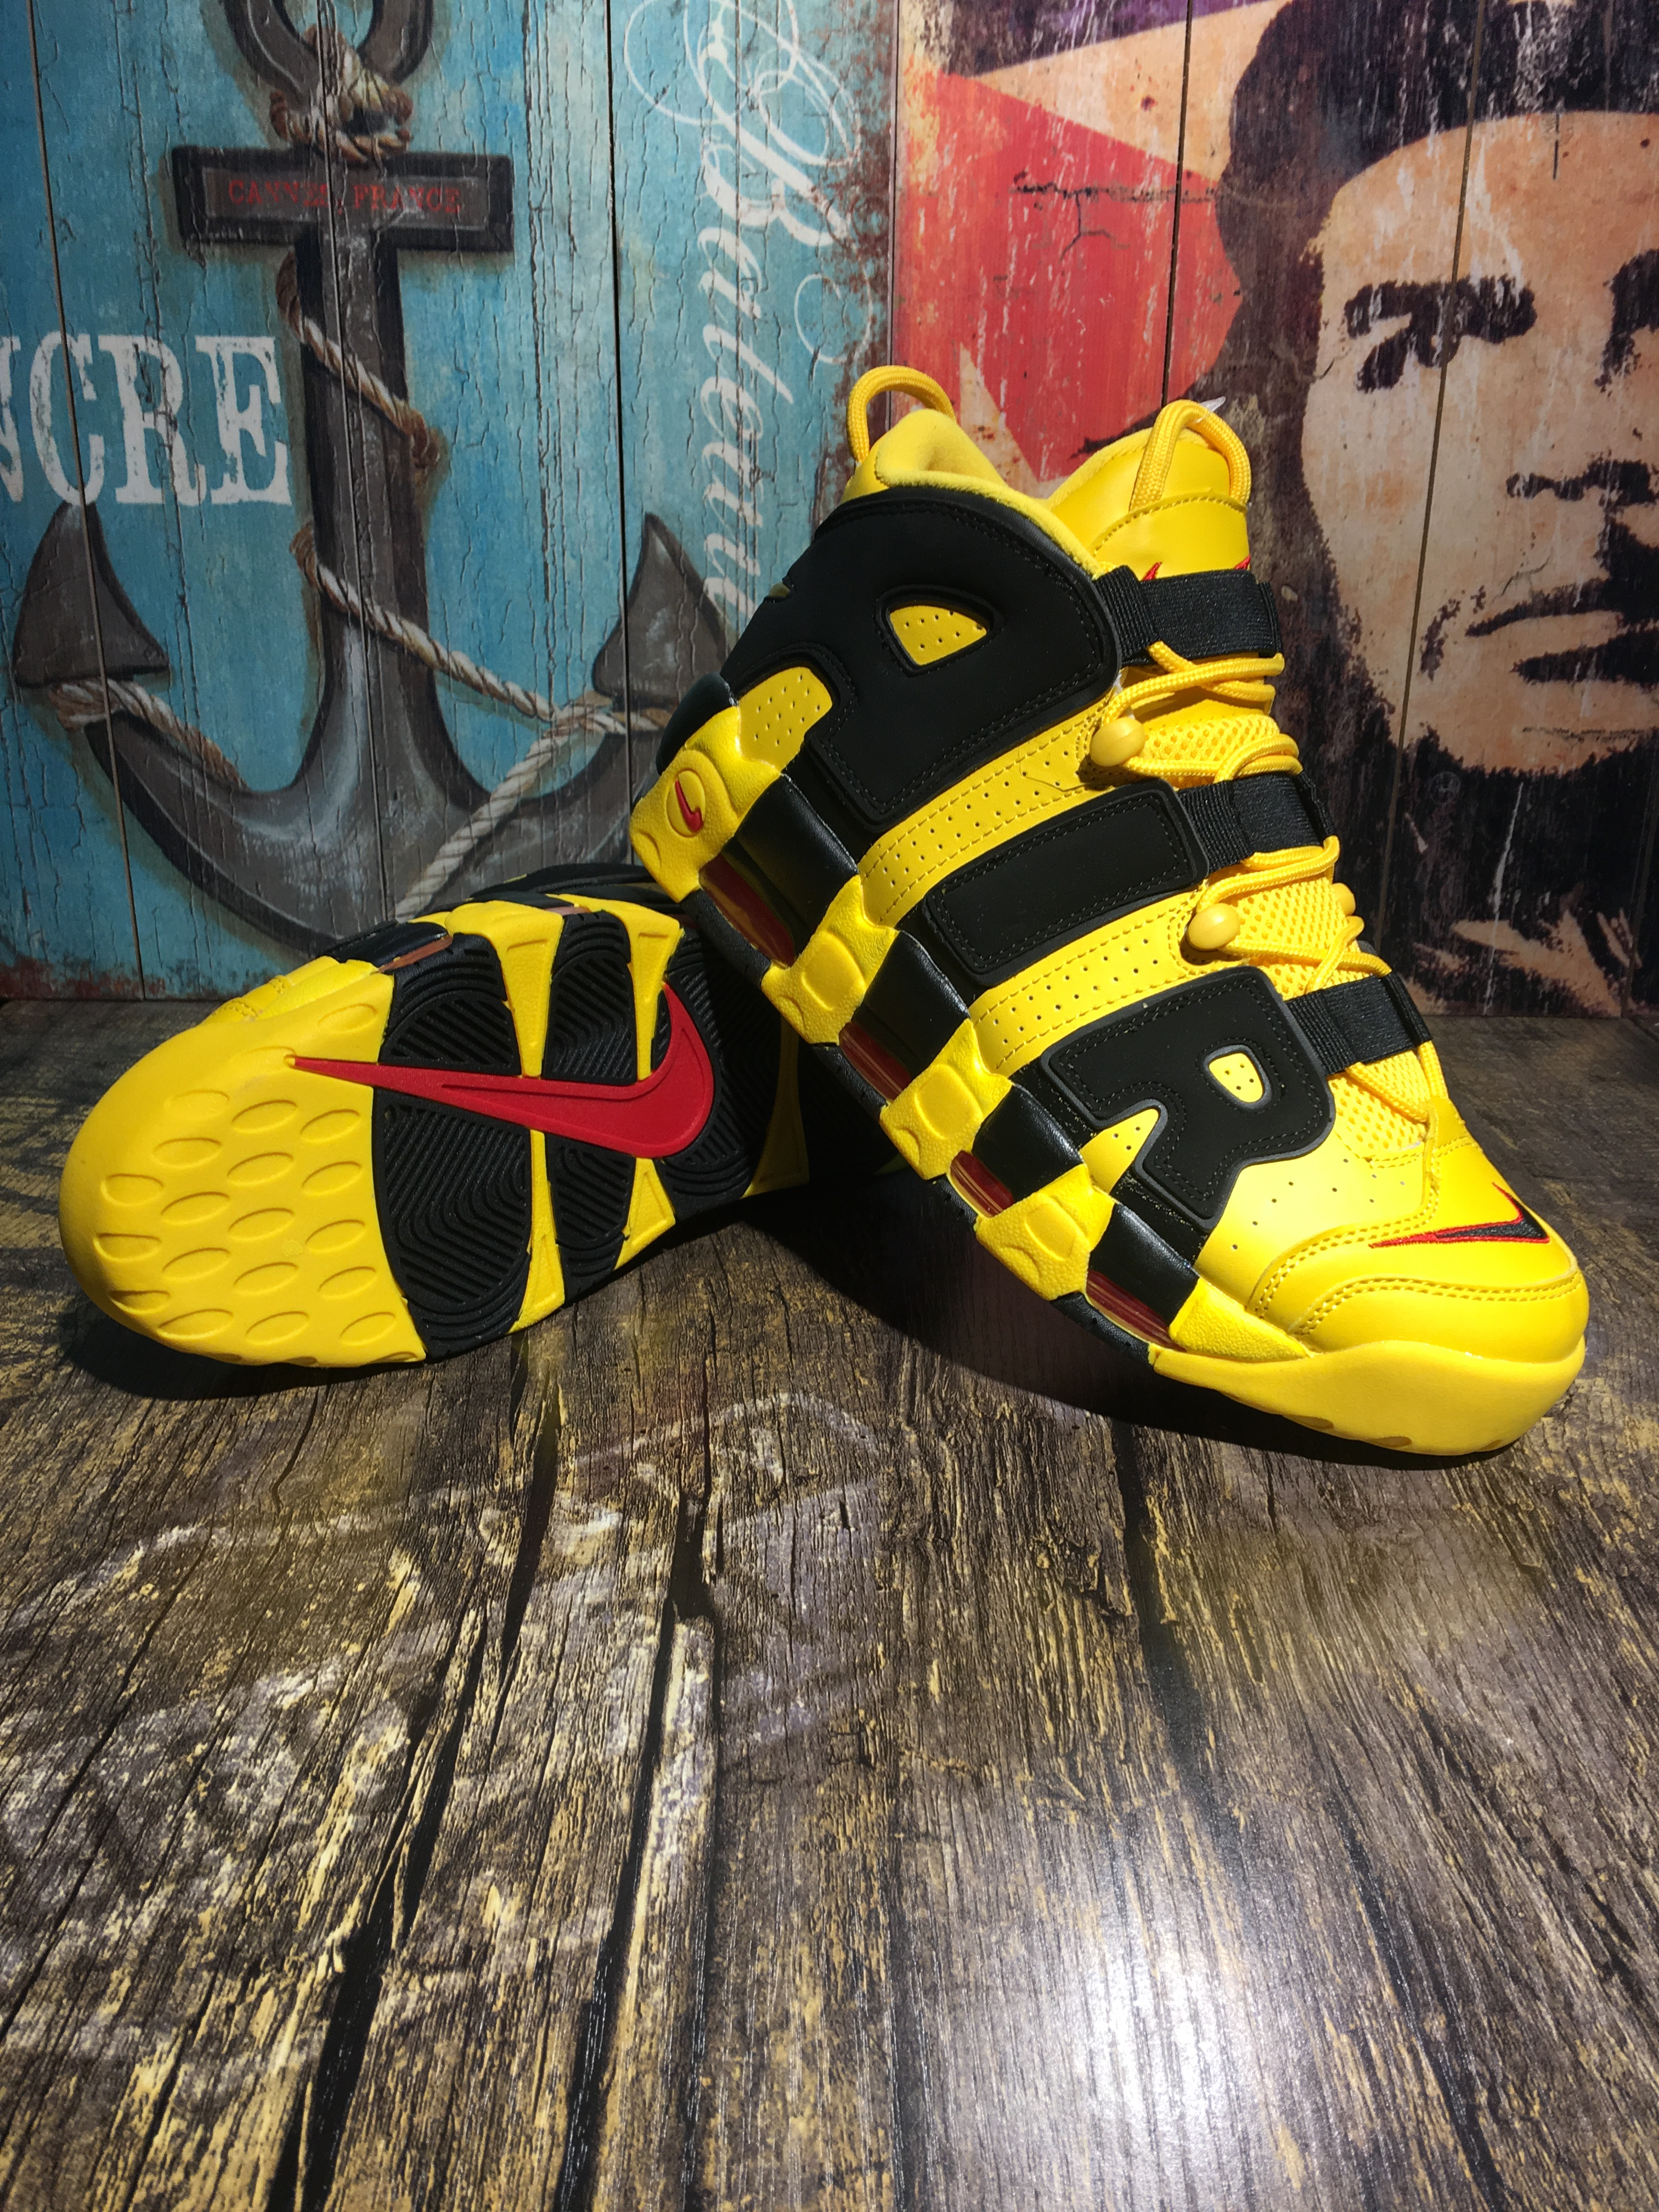 Nike Air Uptempo Yellow Black Shoes